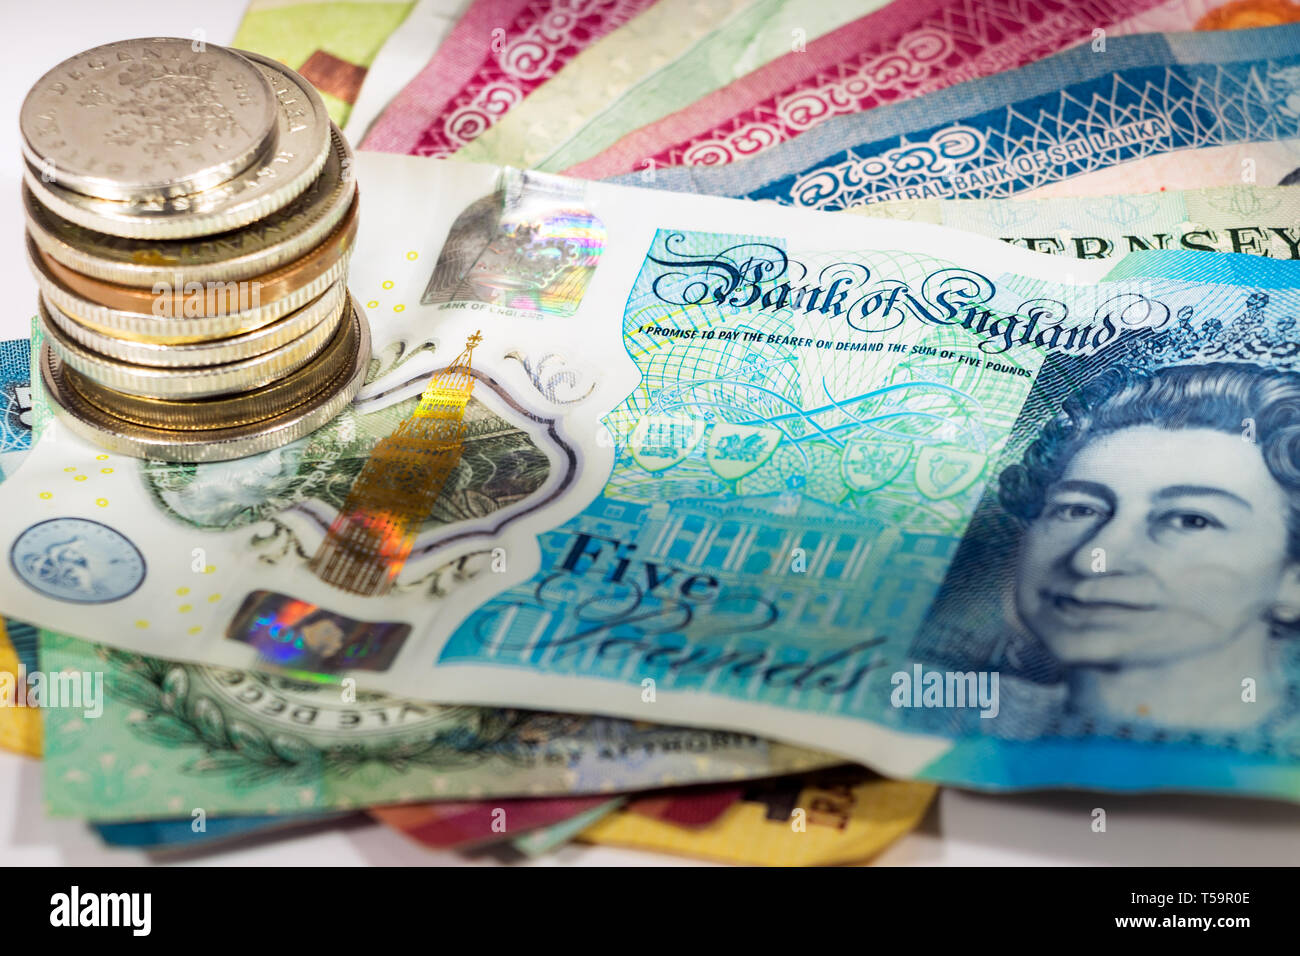 A five pound new polymer banknote from UK with a pile of coins, focus on the bank of england phrase. - Stock Image